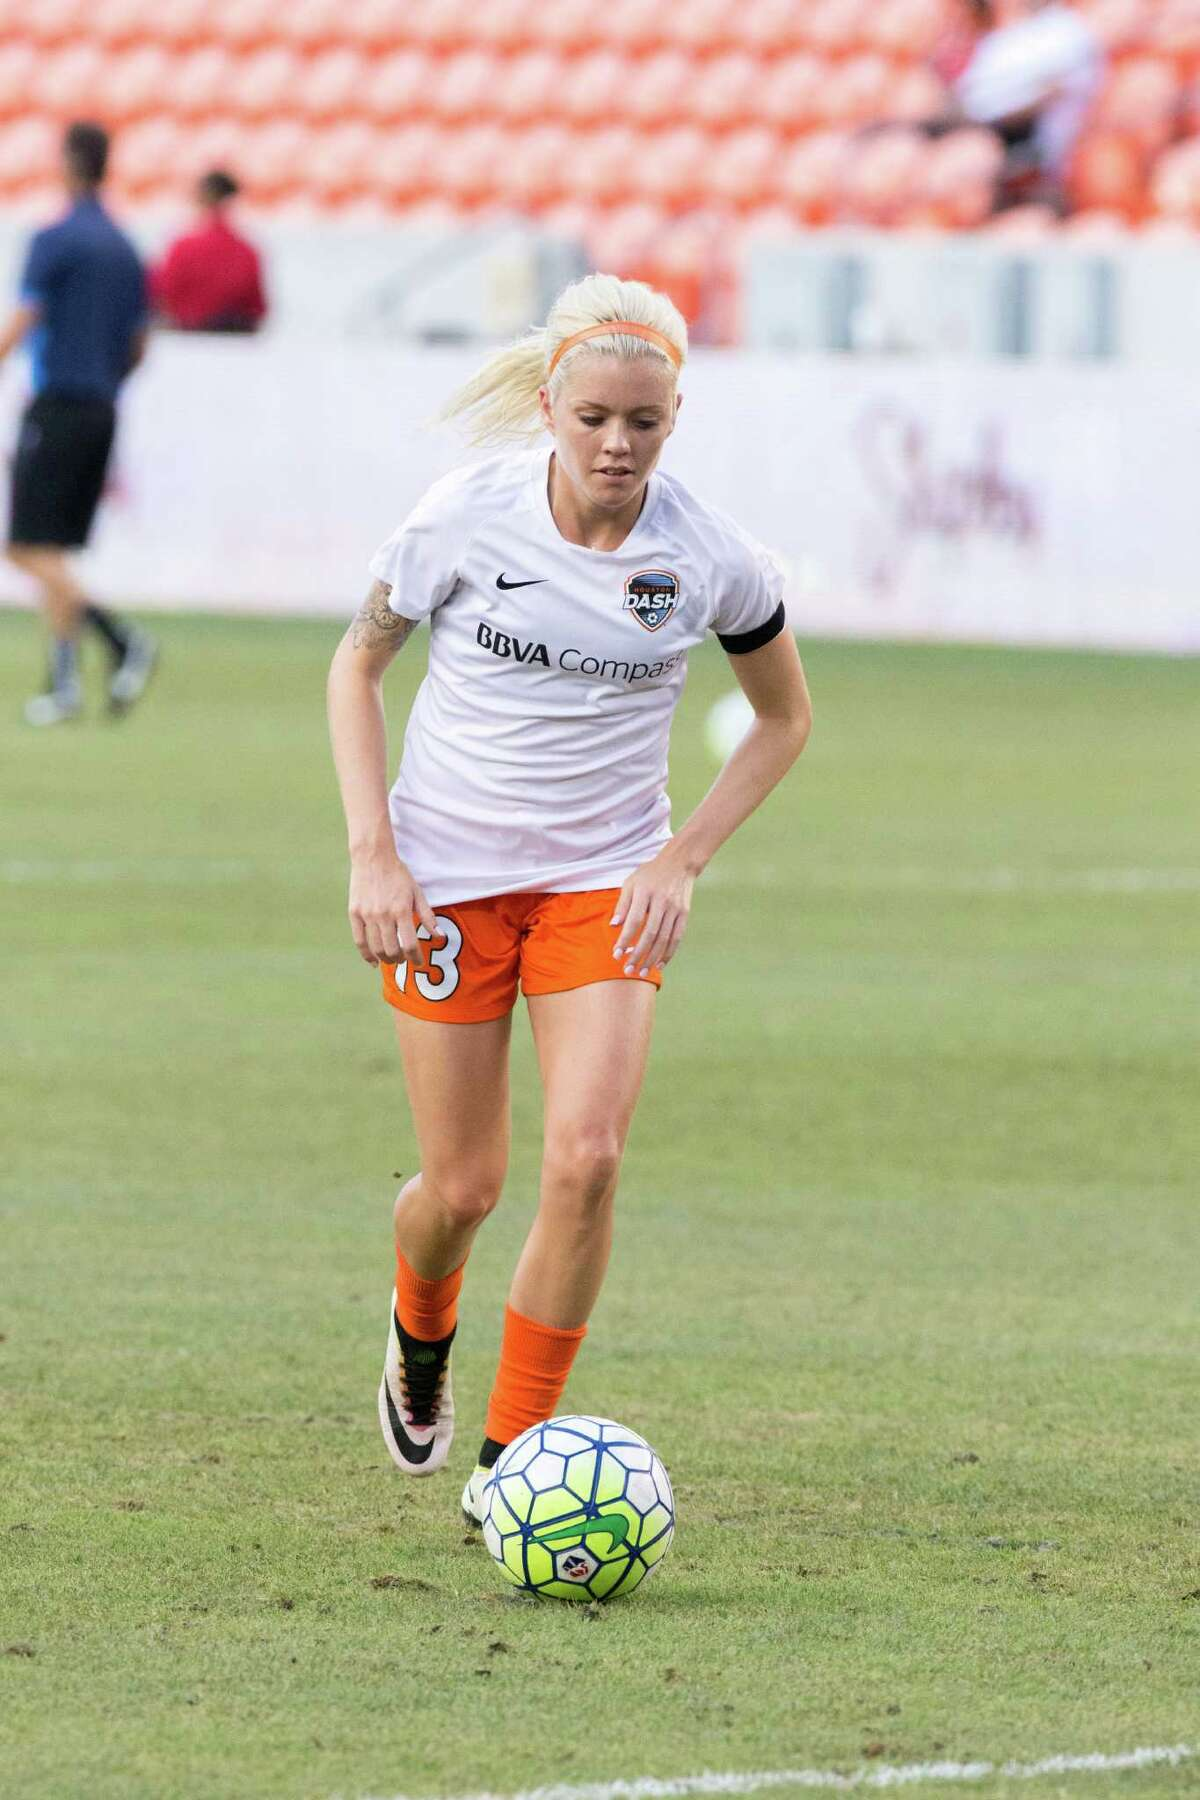 Houston Dash midfielder Denise O'Sullivan (13) warms up on the field against the FC Kansas City before action between the Houston Dash and the FC Kansas City during a soccer game at BBVA Compass, Sunday, June 19, 2016, in Houston. FC Kansas City defeated Houston Dash 1-0. ( Juan DeLeon / for the Houston Chronicle )